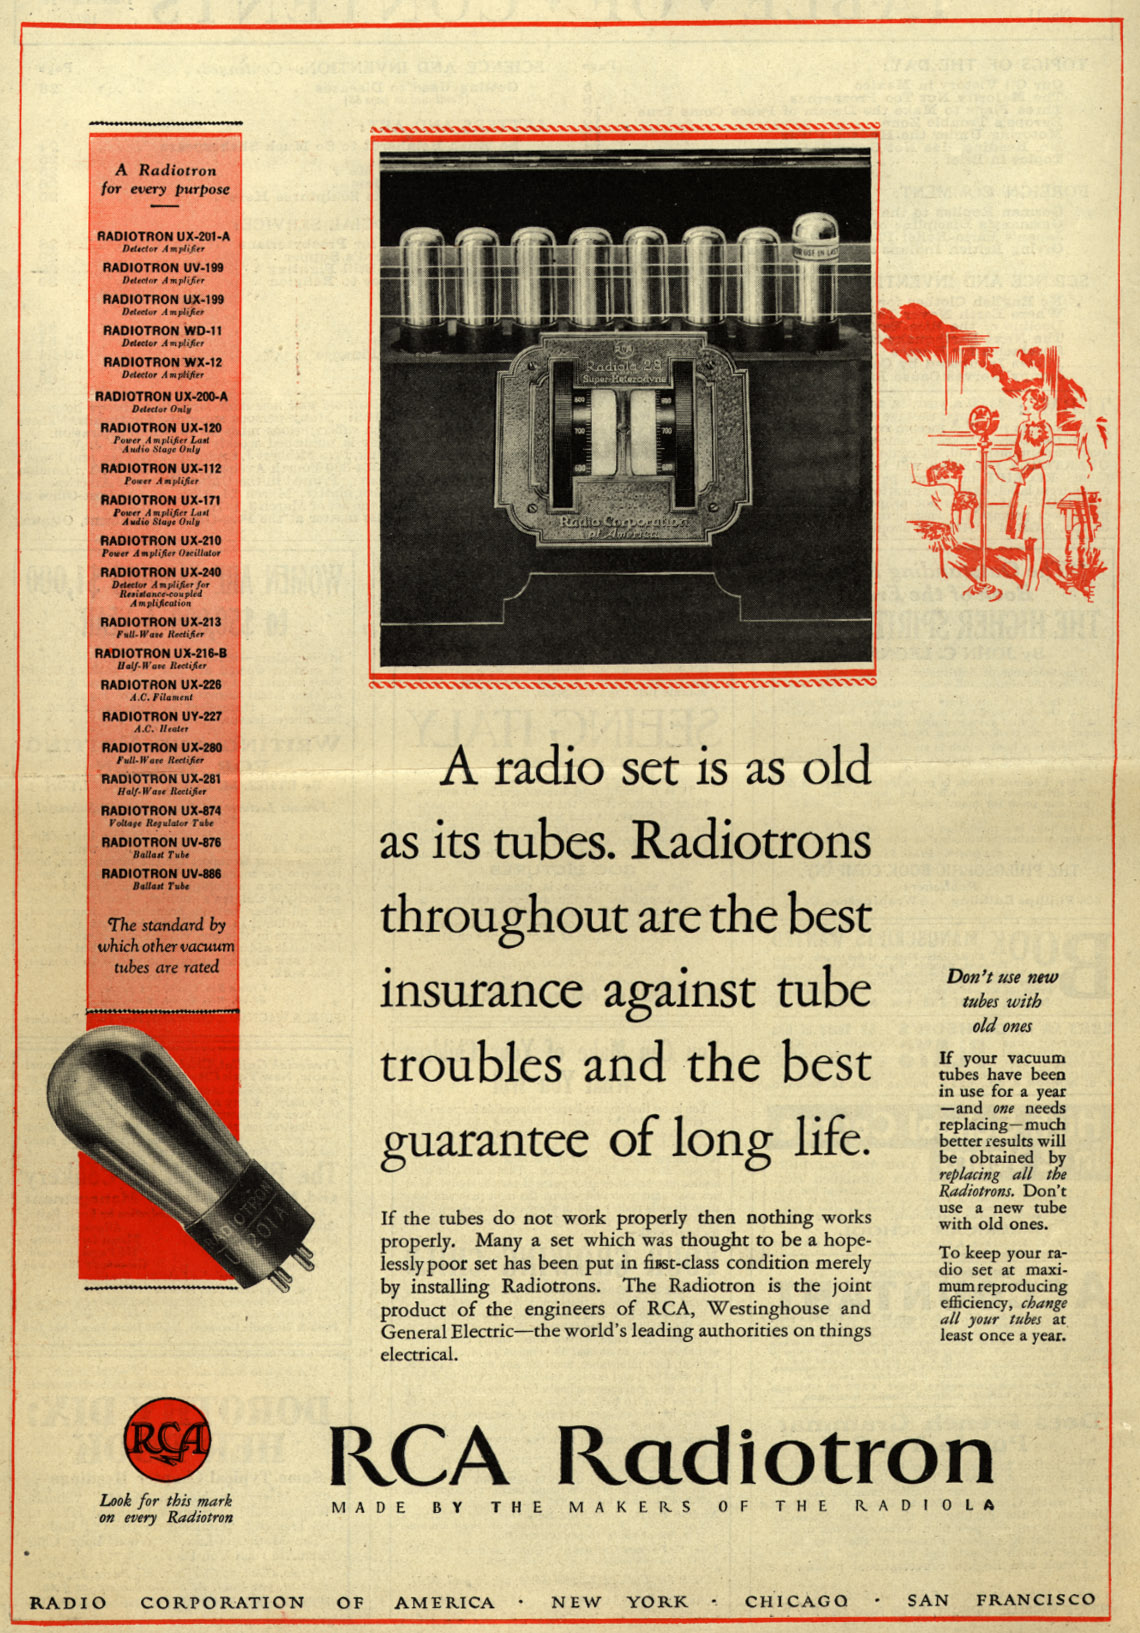 A_radio_set_is_as_old_as_its_tubes